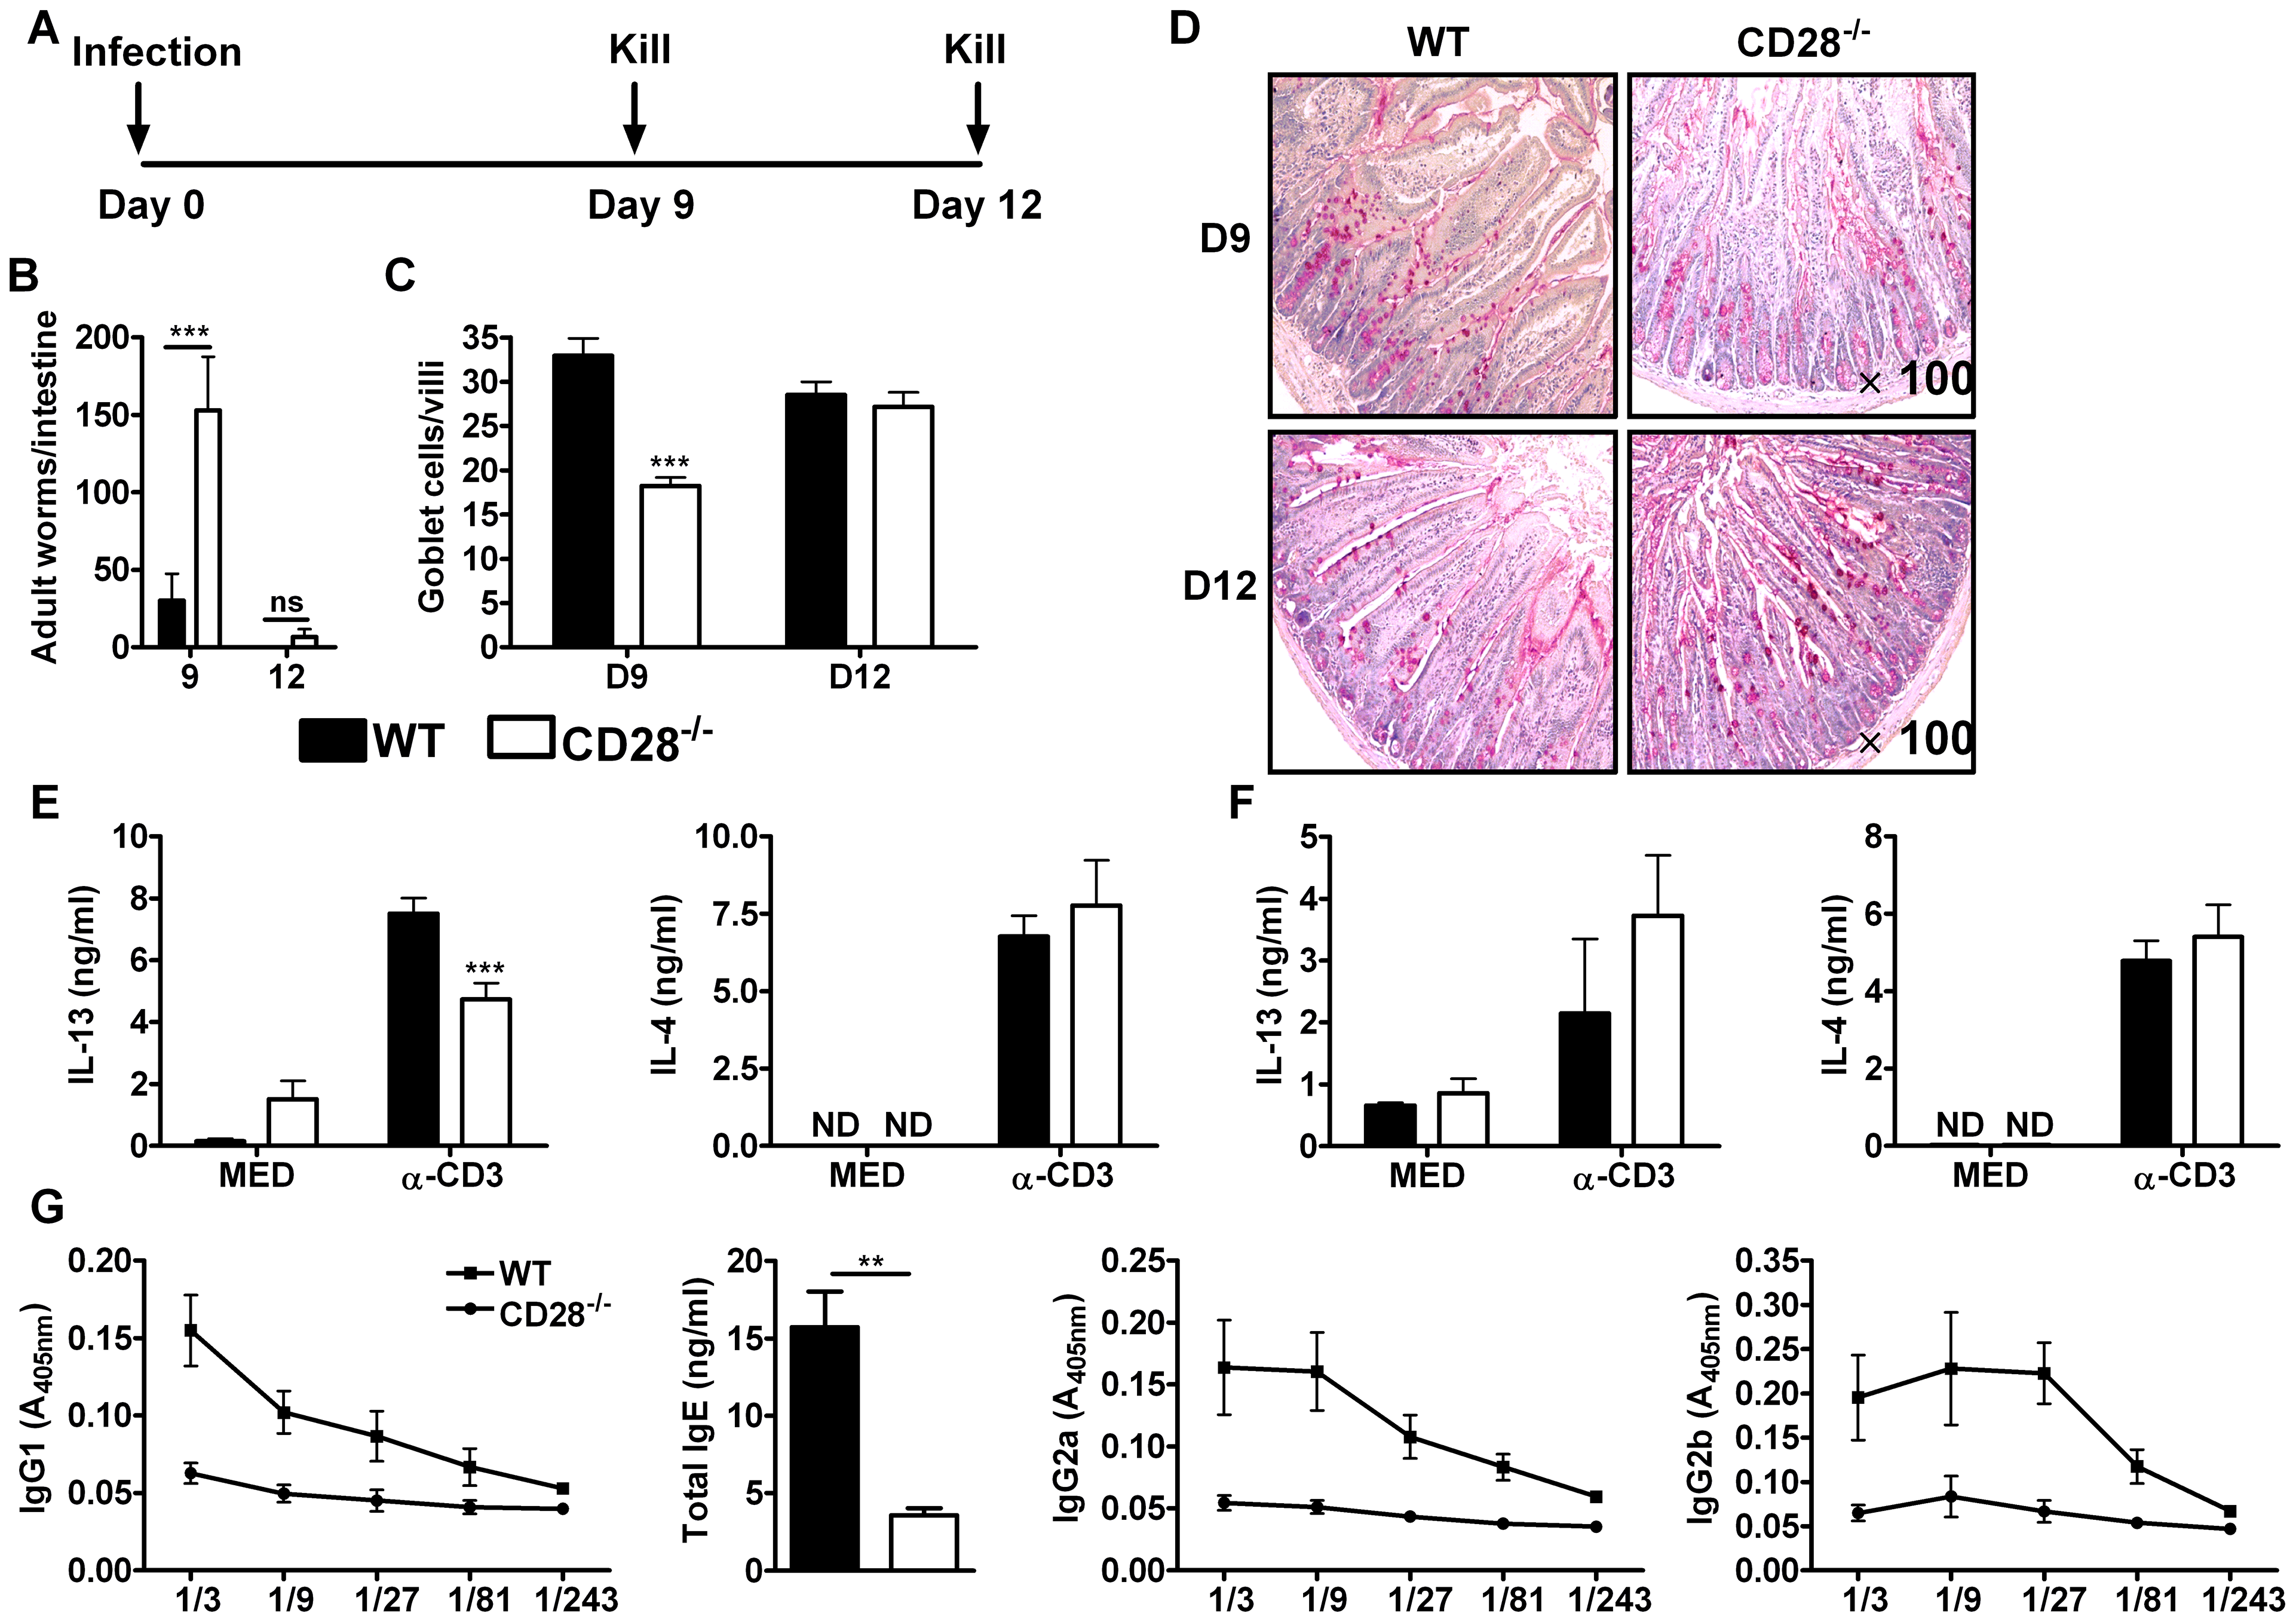 Delayed worm expulsion in CD28 deficient mice during primary <i>N. brasiliensis</i> infection.